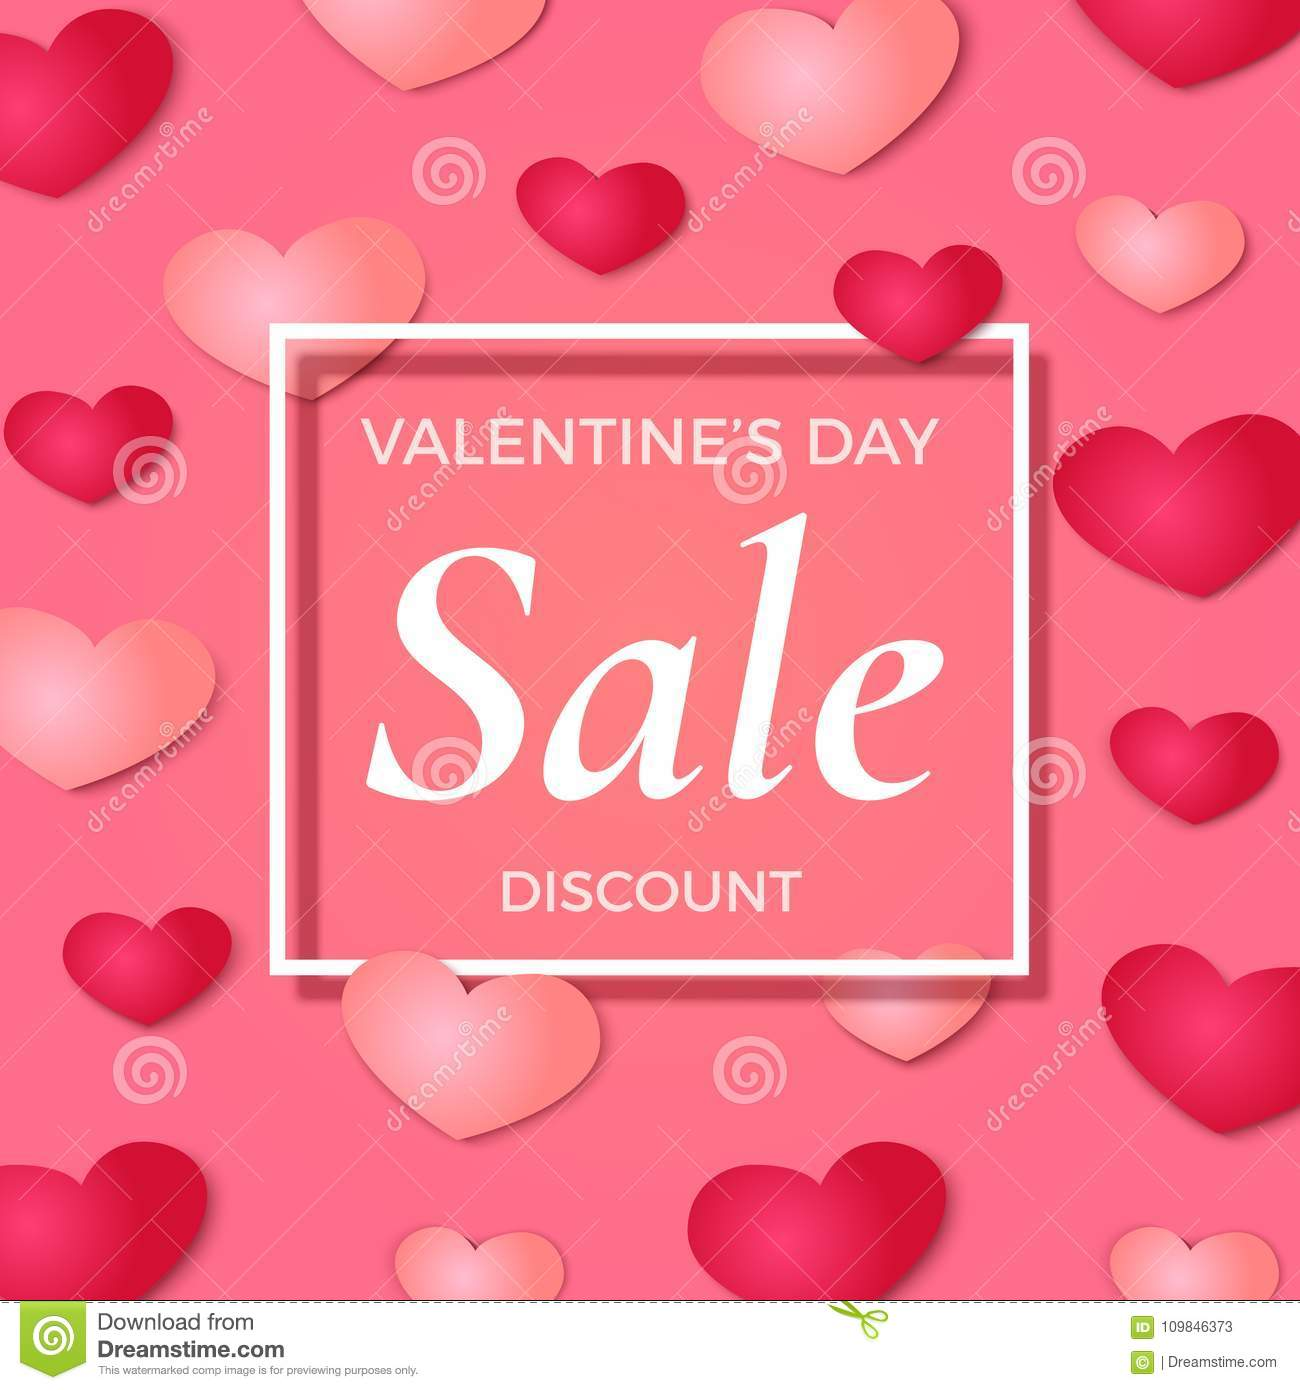 Valentine S Day Sale Background Poster Broshure Or Flyer Template